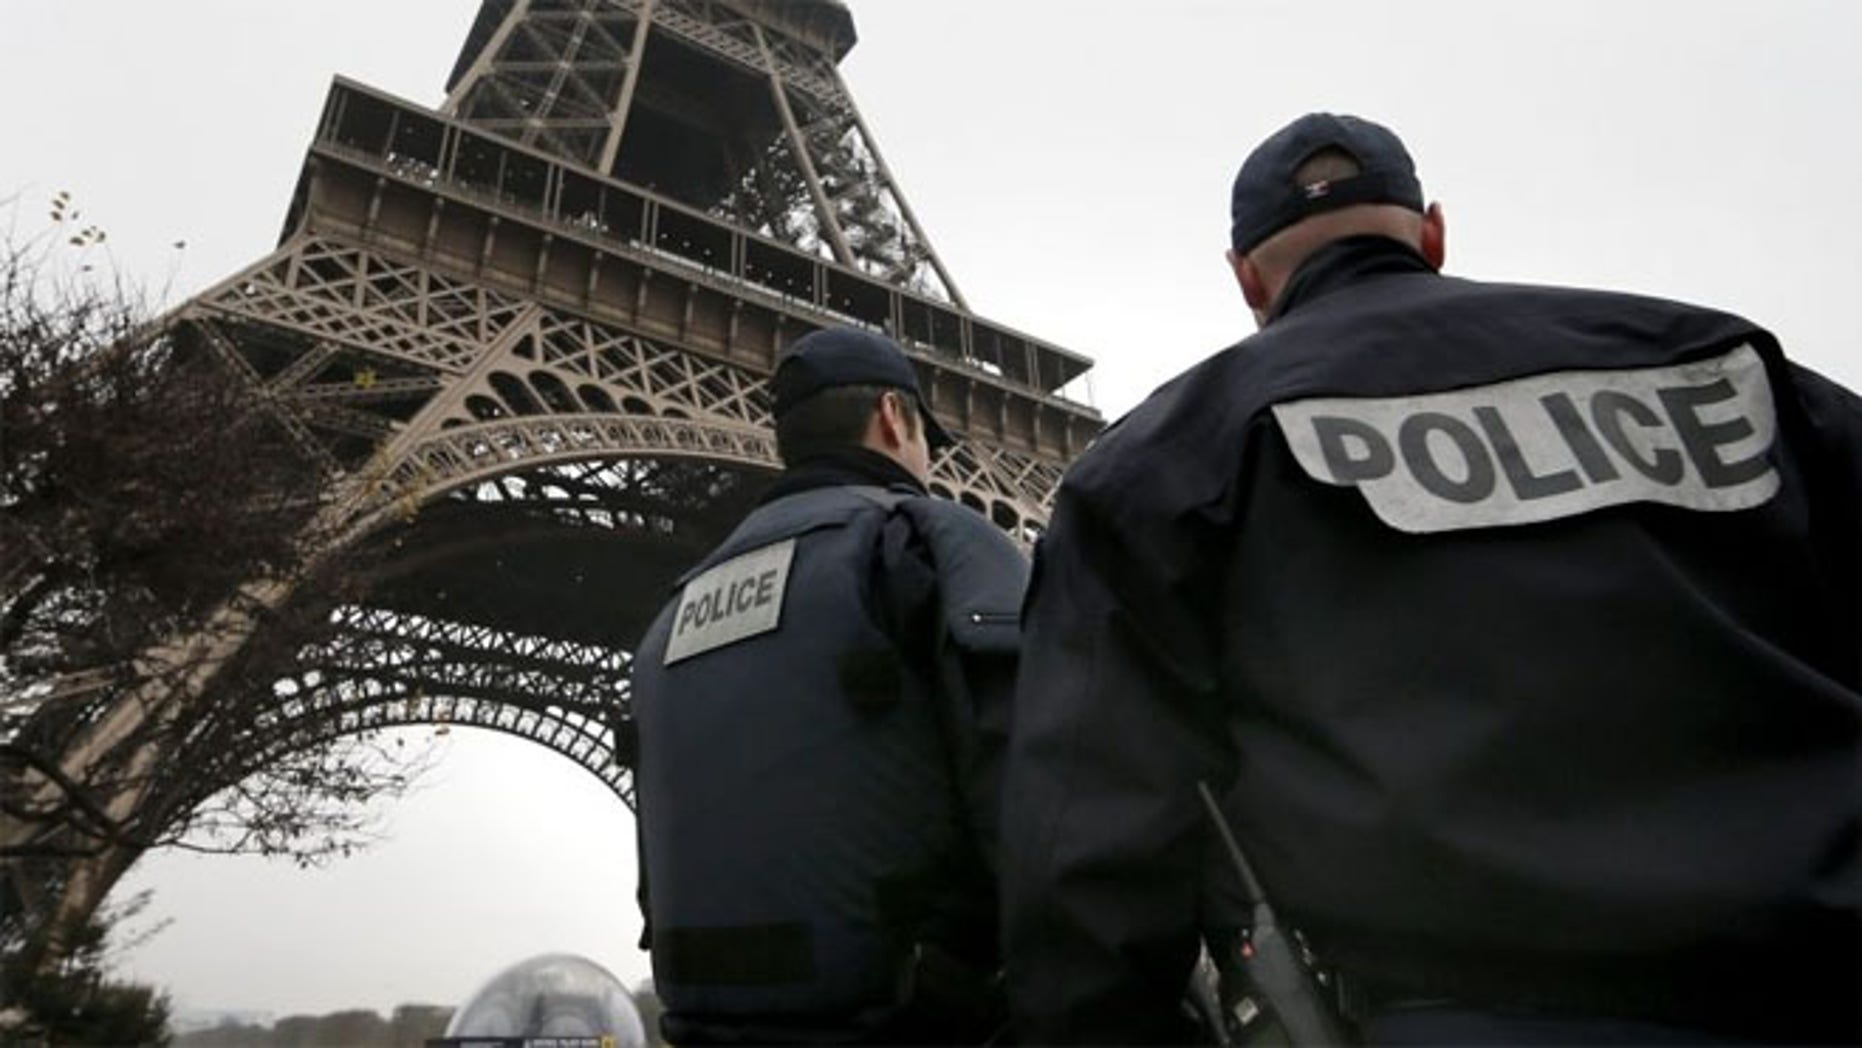 French police patrol near the Eiffel Tower in Paris after a shooting at the Paris offices of Charlie Hebdo.